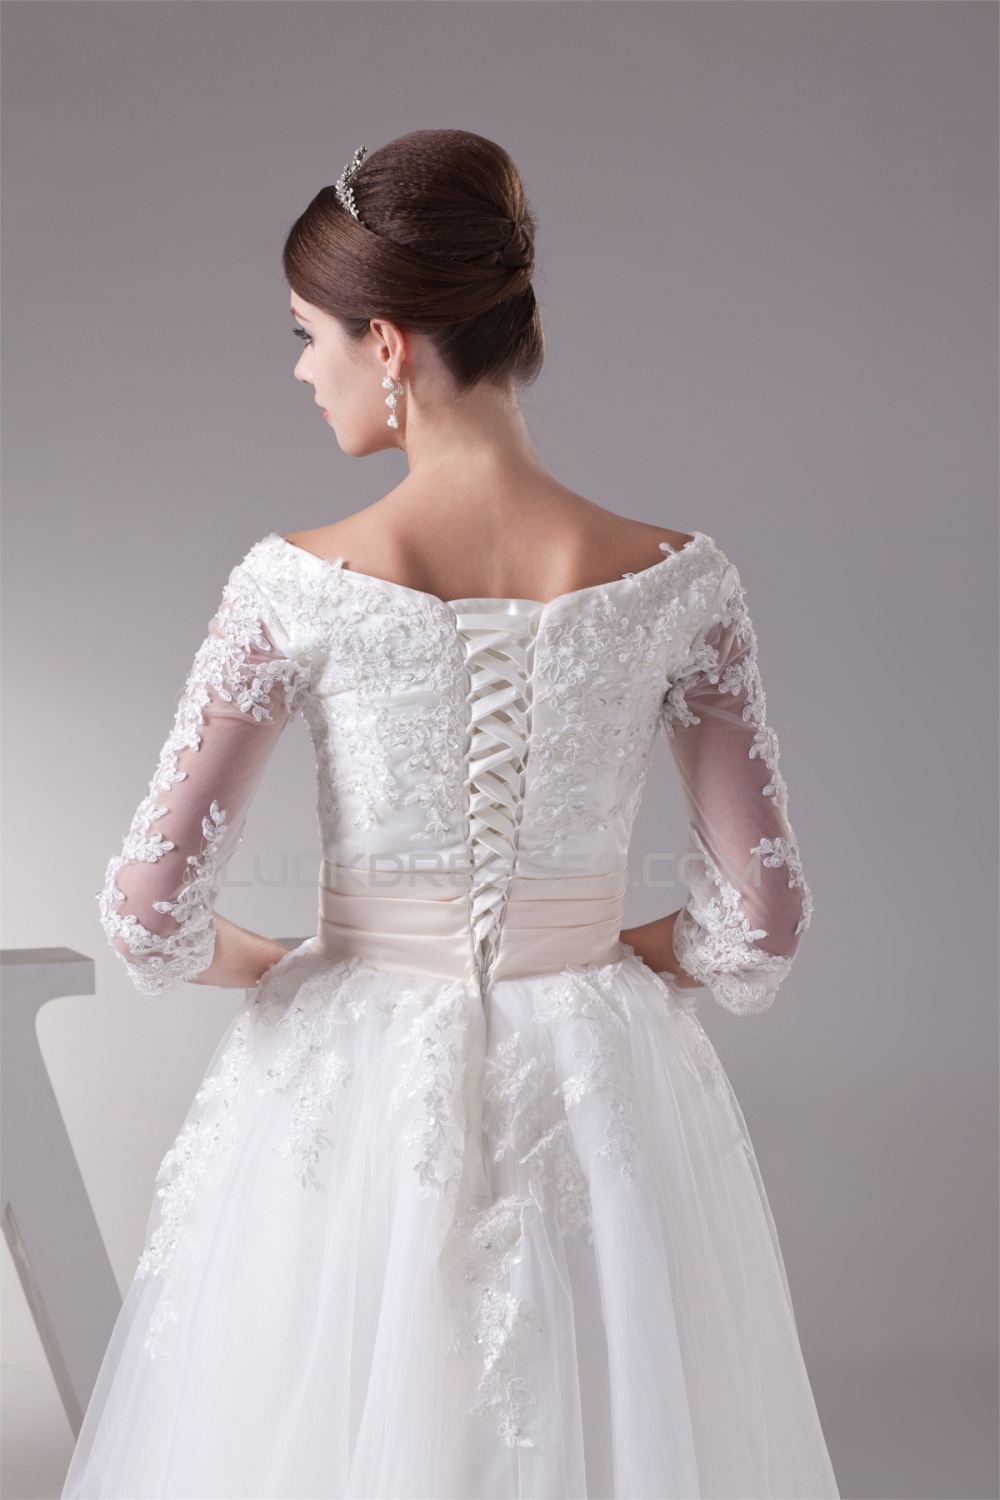 3 4 length sleeve wedding dress satin lace netting scoop a line 3 4 length sleeve 1084